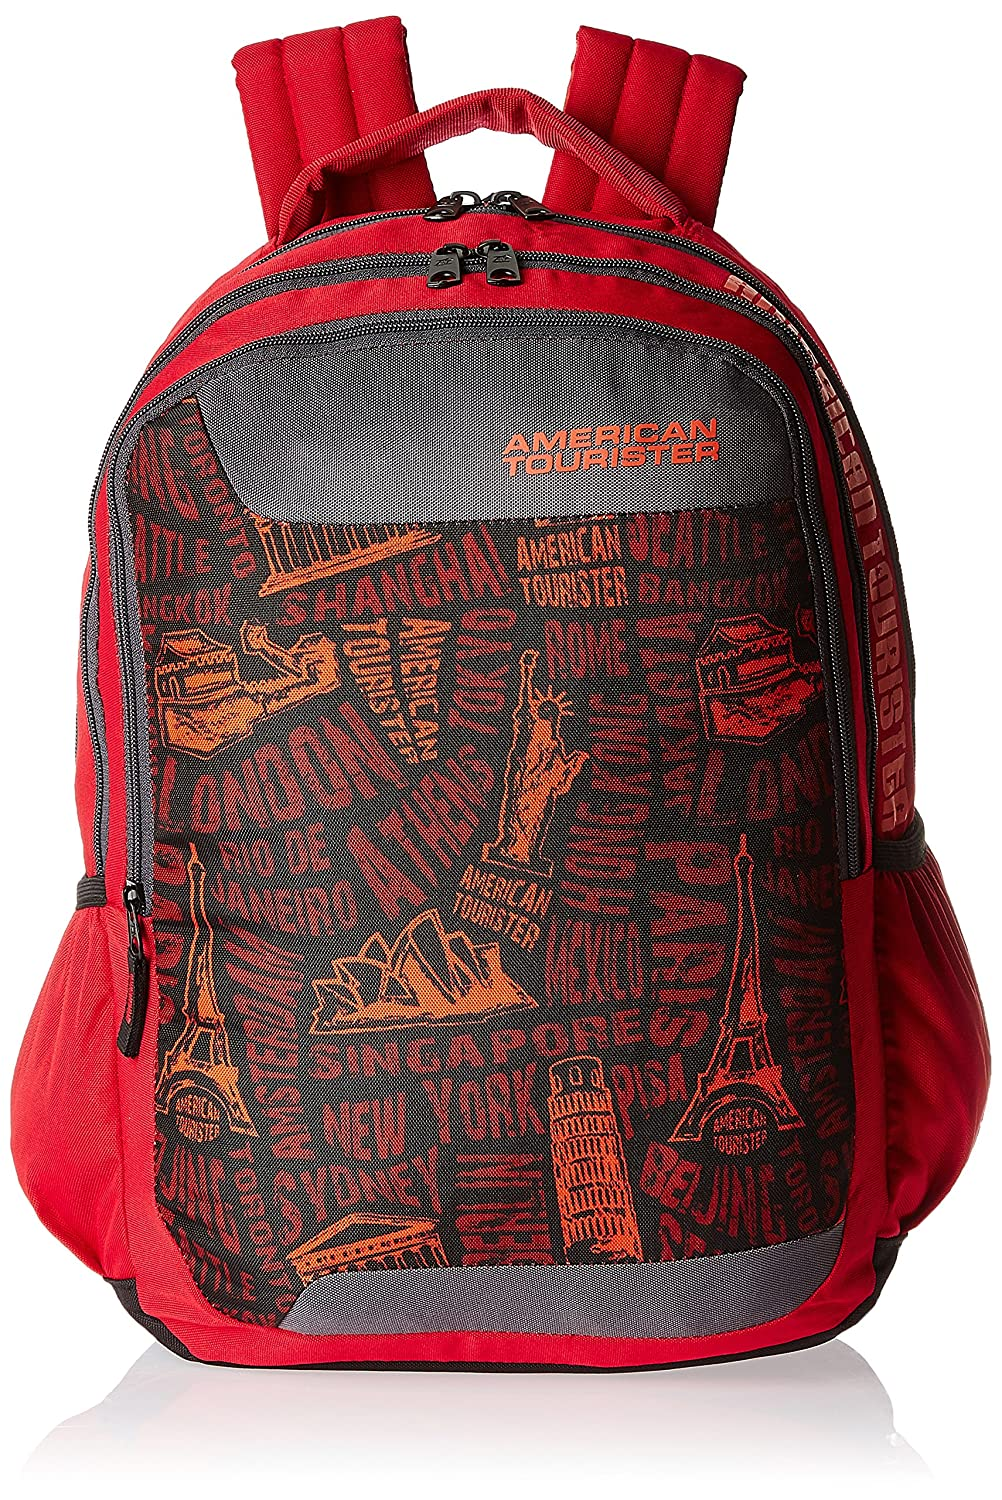 American Tourister Red Casual Backpack (CLICK 2016) By Amazon @ Rs.1,191